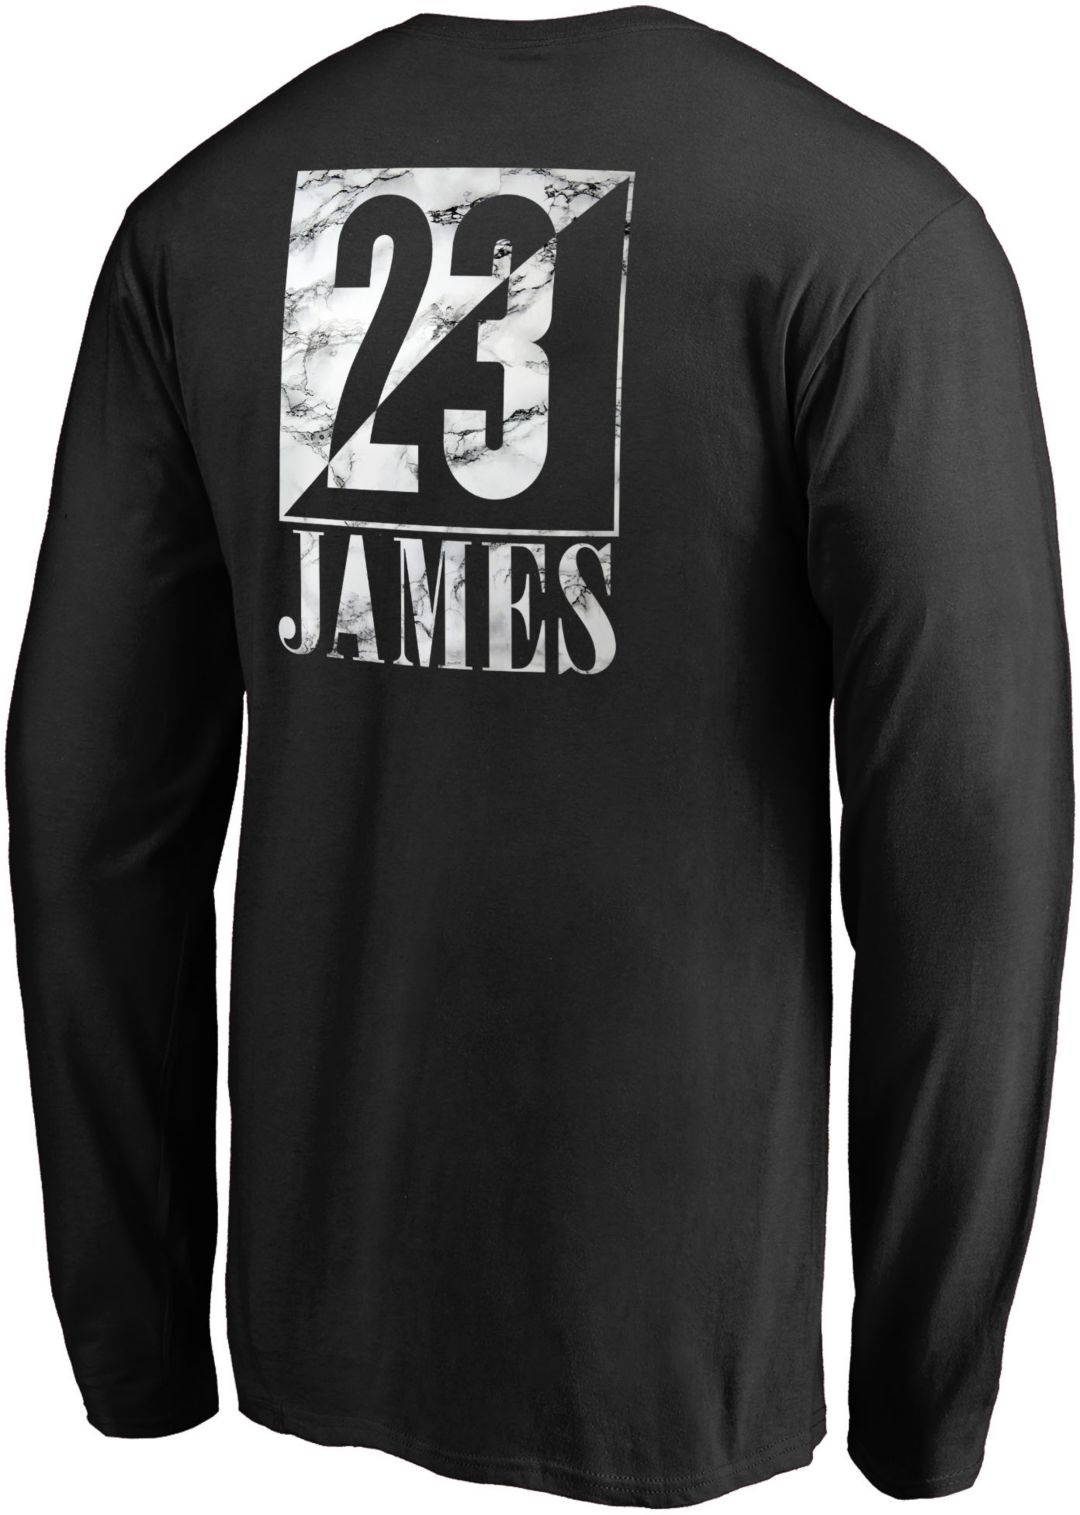 online store f1833 e1395 NBA Men's Los Angeles Lakers LeBron James Black Long Sleeve Shirt